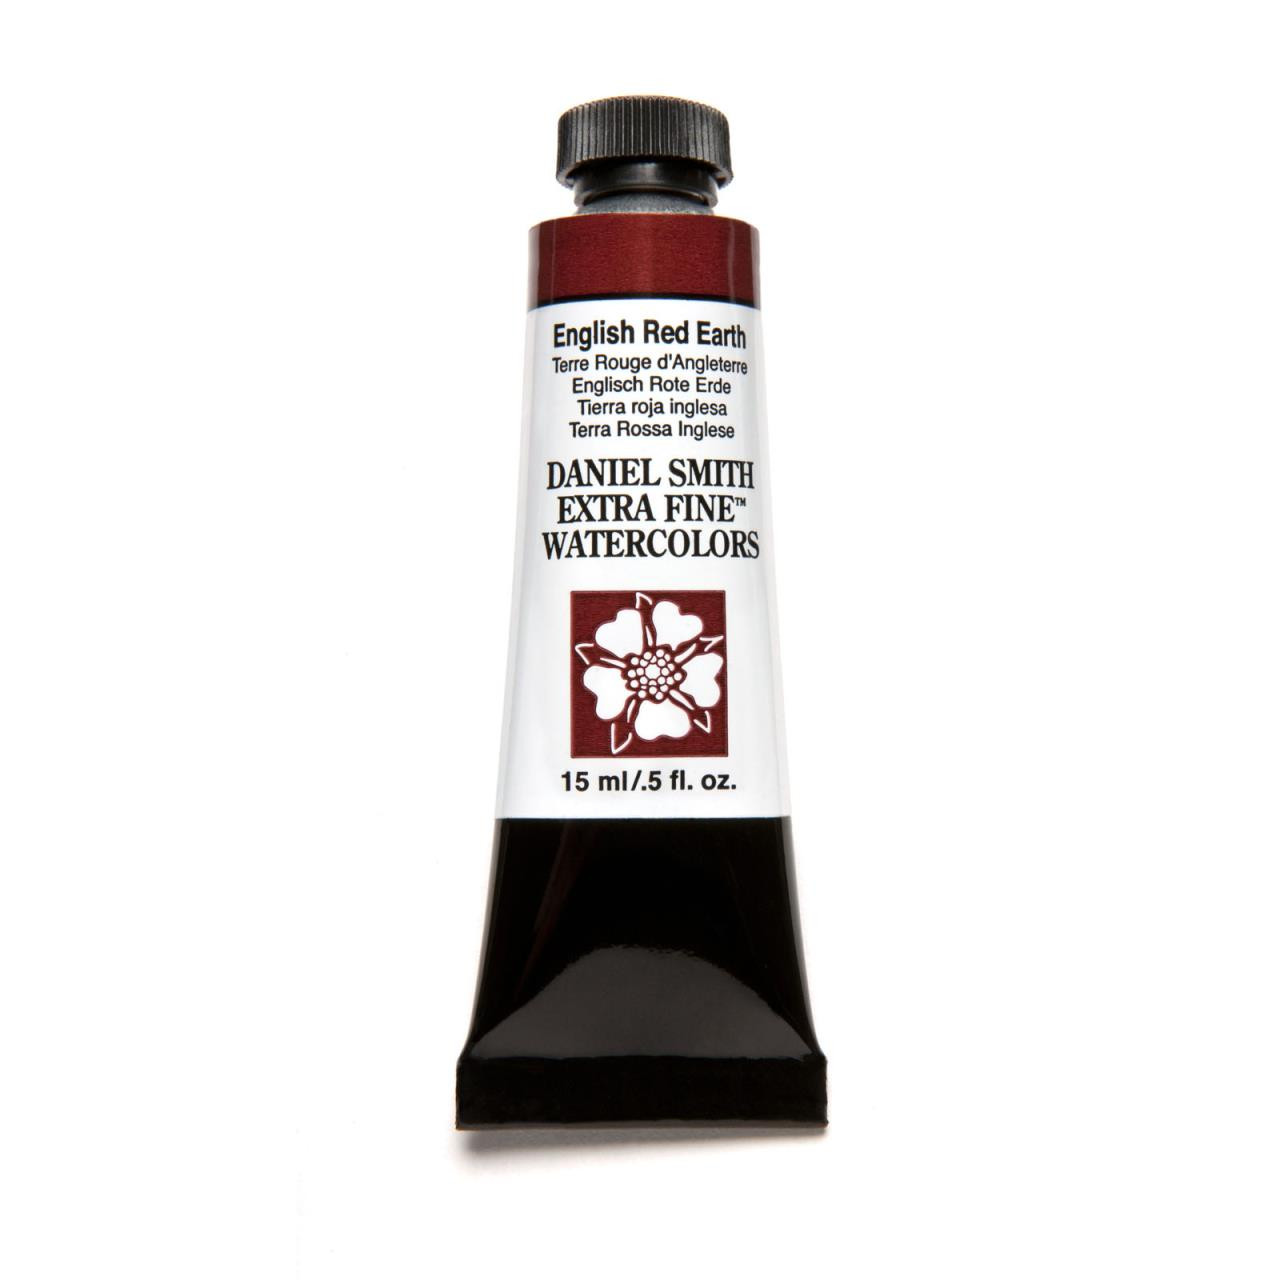 English Red Earth, DANIEL SMITH Extra Fine Watercolors 15ml Tubes -